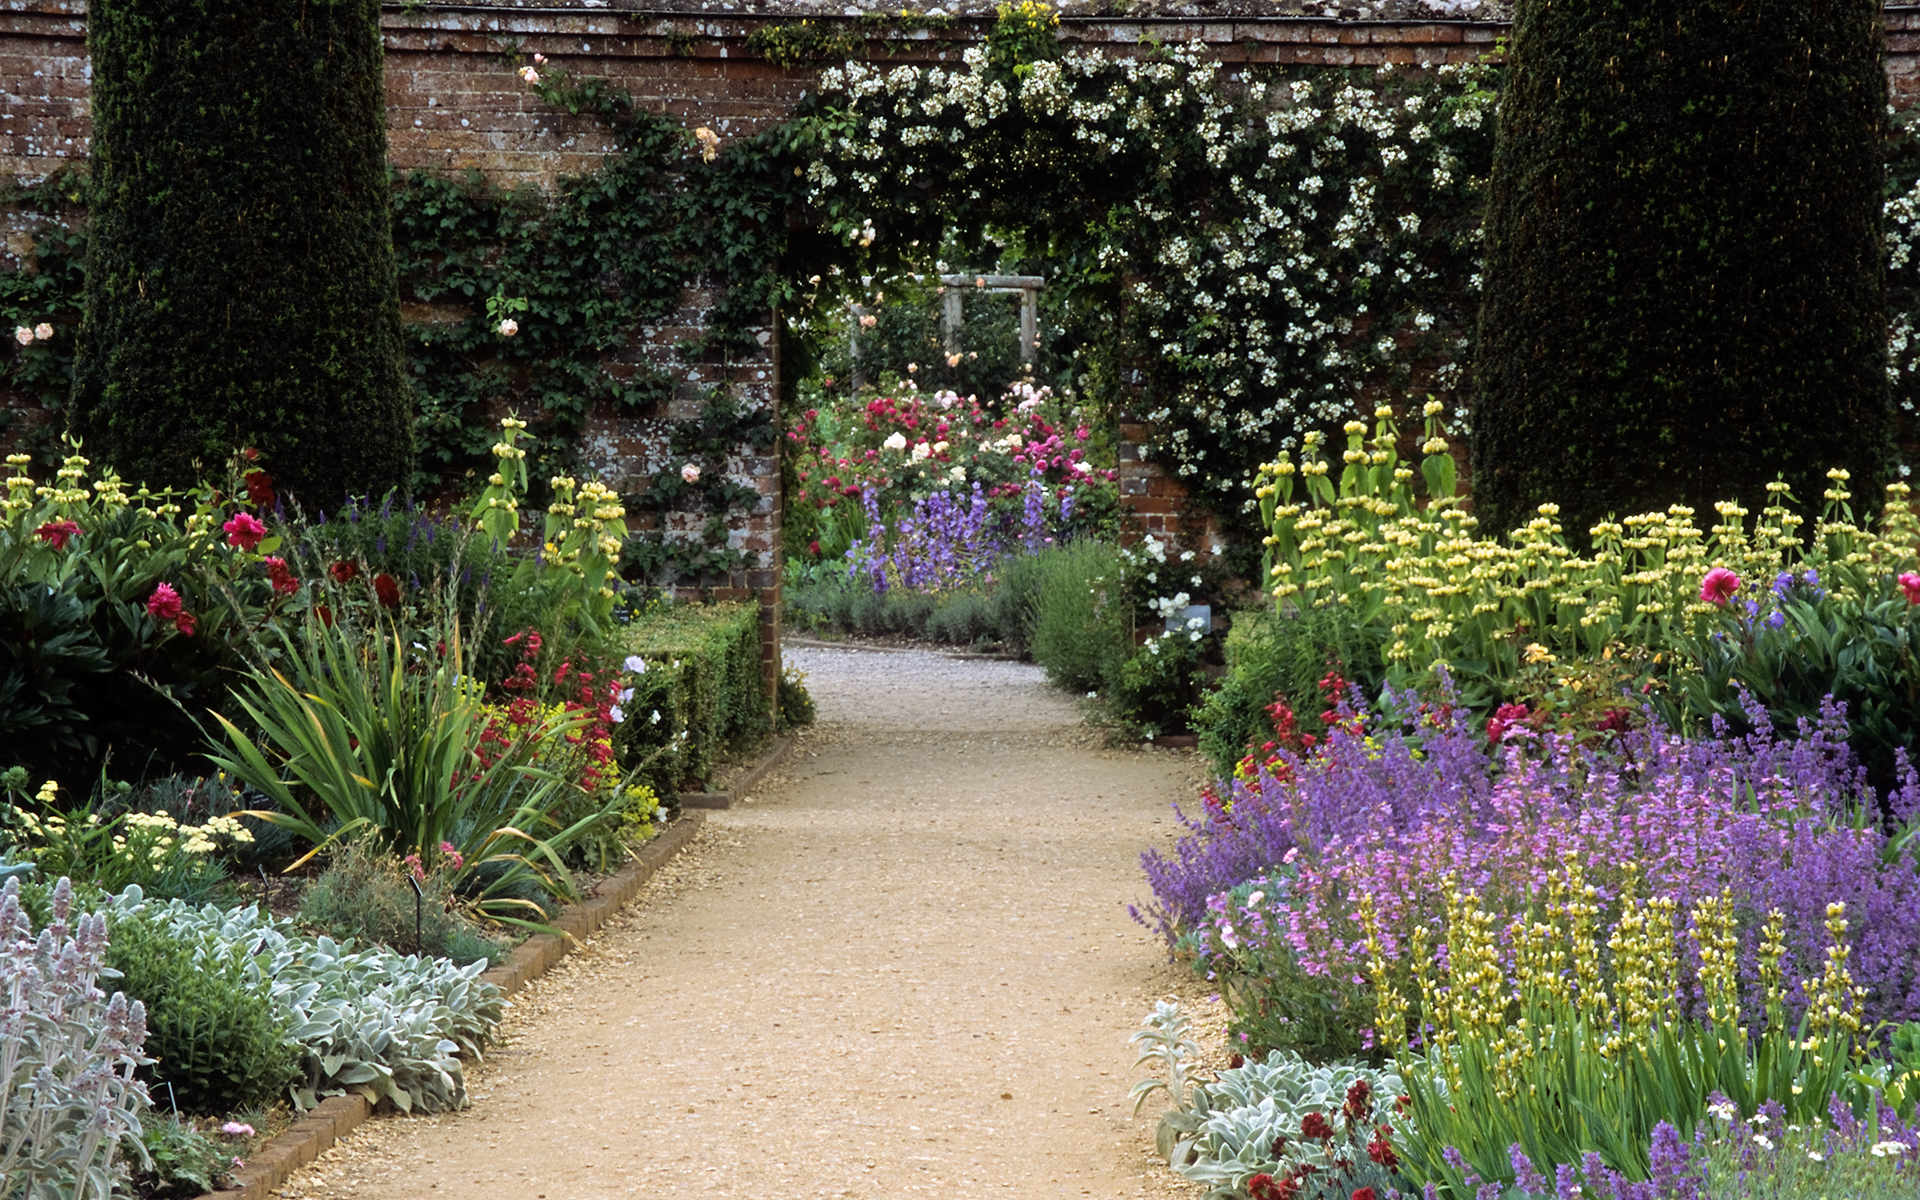 Roses In Garden: Mottisfont Abbey Gardens, Hampshire, England